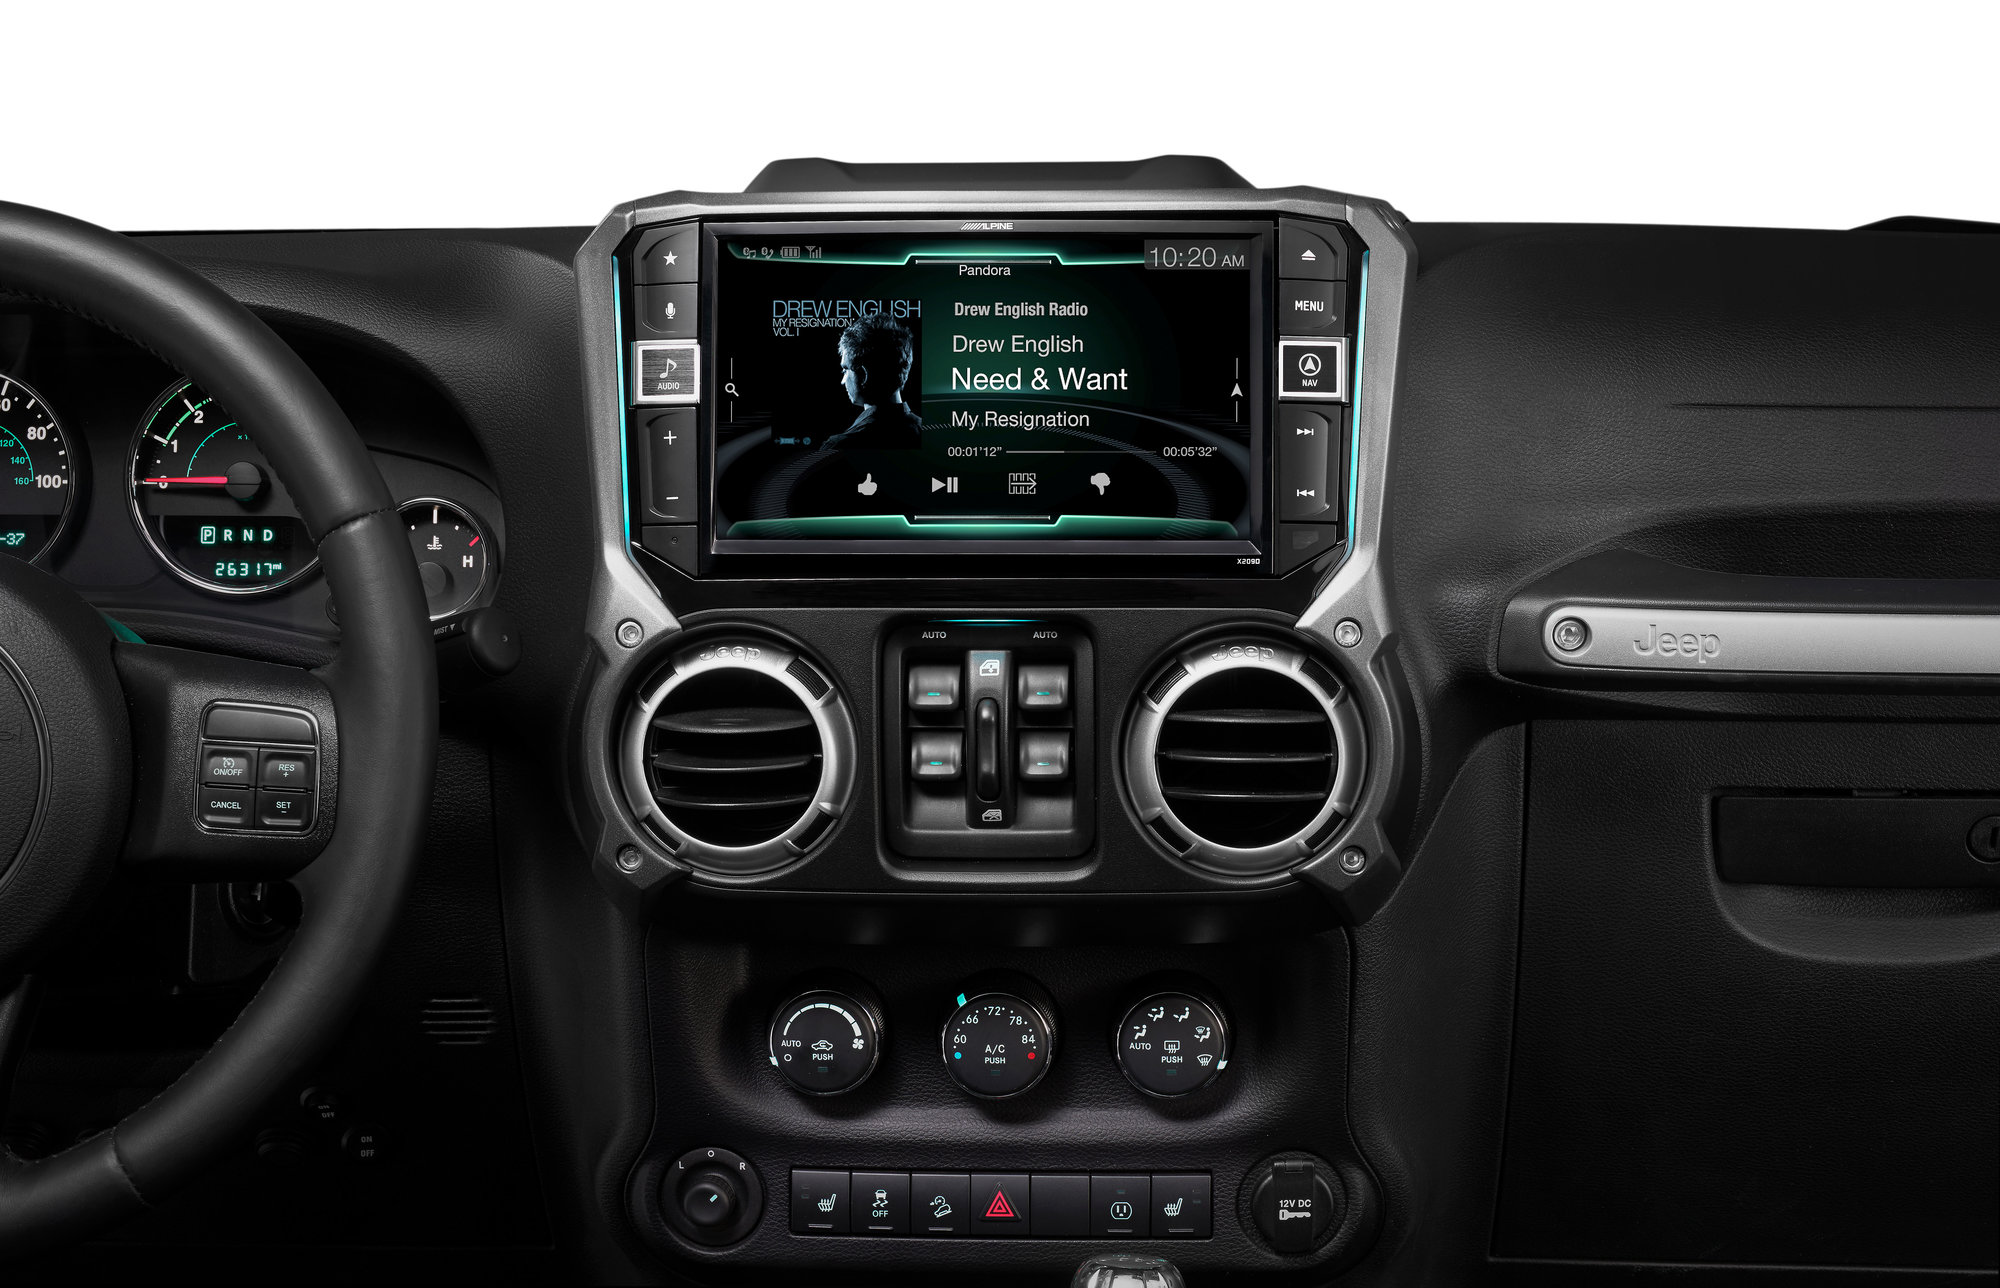 Mobile Electronics Automotive Head Units Electronic Custom Wiring For Home Audio Speakers X209 Wra Or Alpine Fit Navigation Receiver With 9 Screen